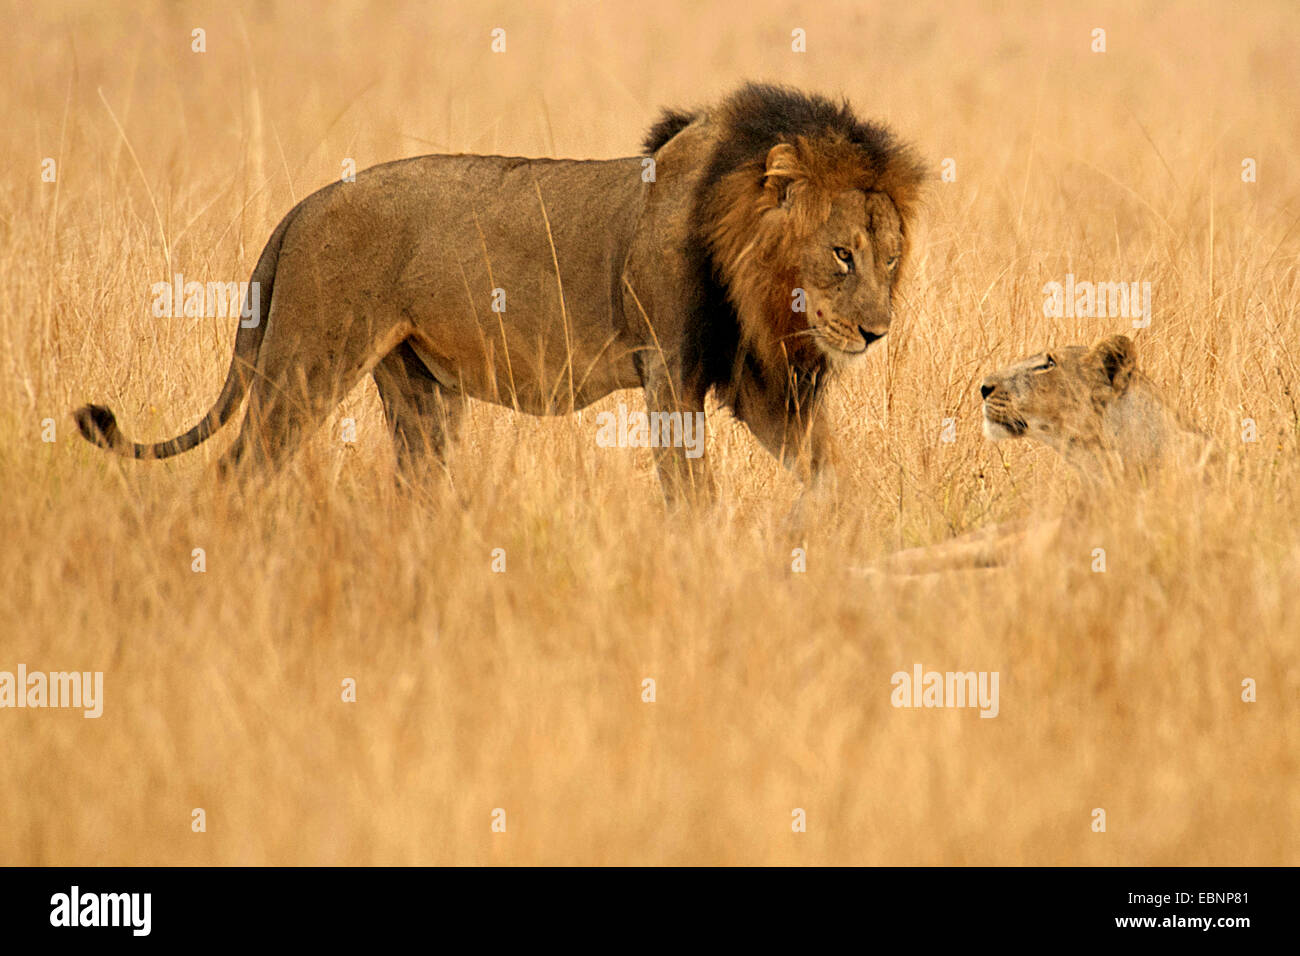 lion (Panthera leo), male and female together in the savannah, Uganda, Queen Elizabeth National Park Stock Photo